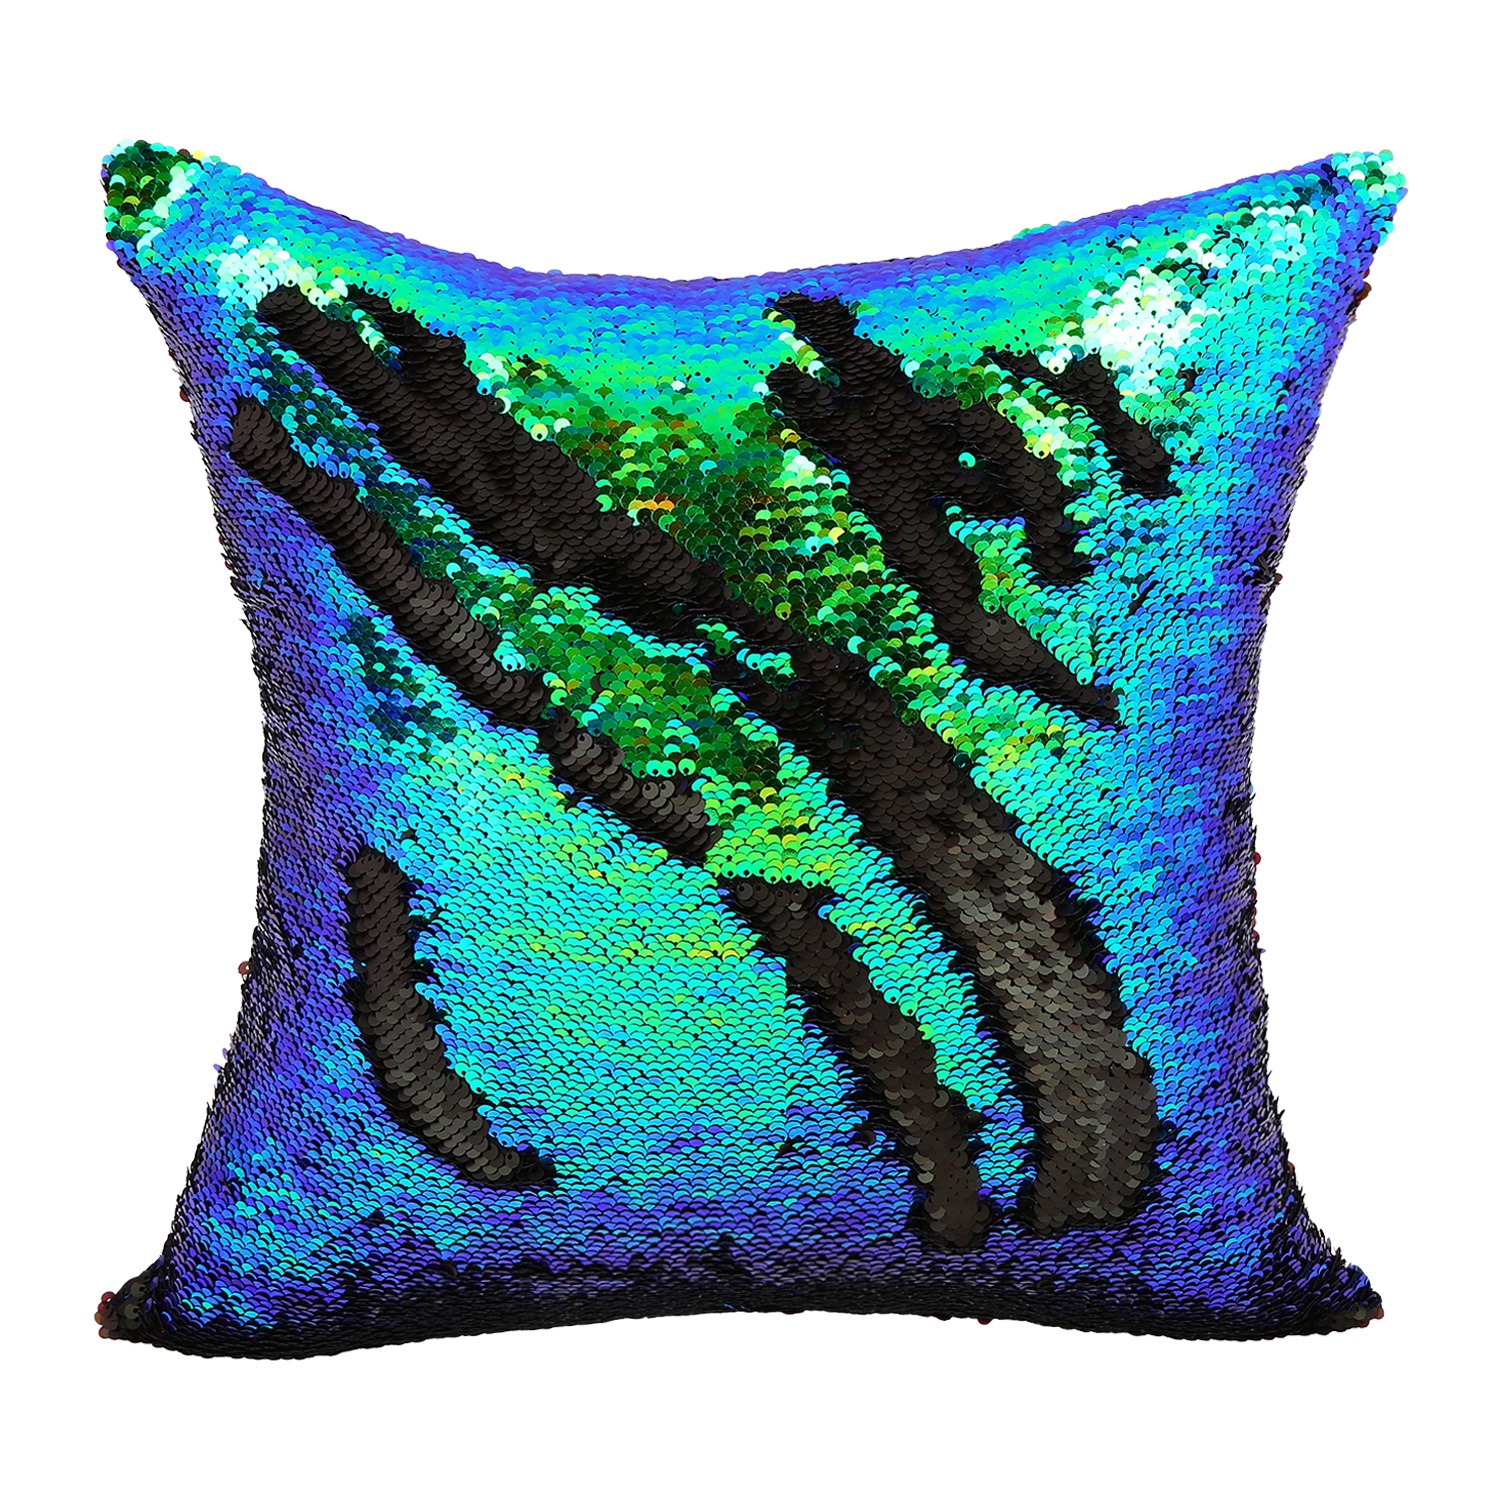 2016 diy glitter sequins throw pillow cases color changing scale hugging home cushion decorative. Black Bedroom Furniture Sets. Home Design Ideas